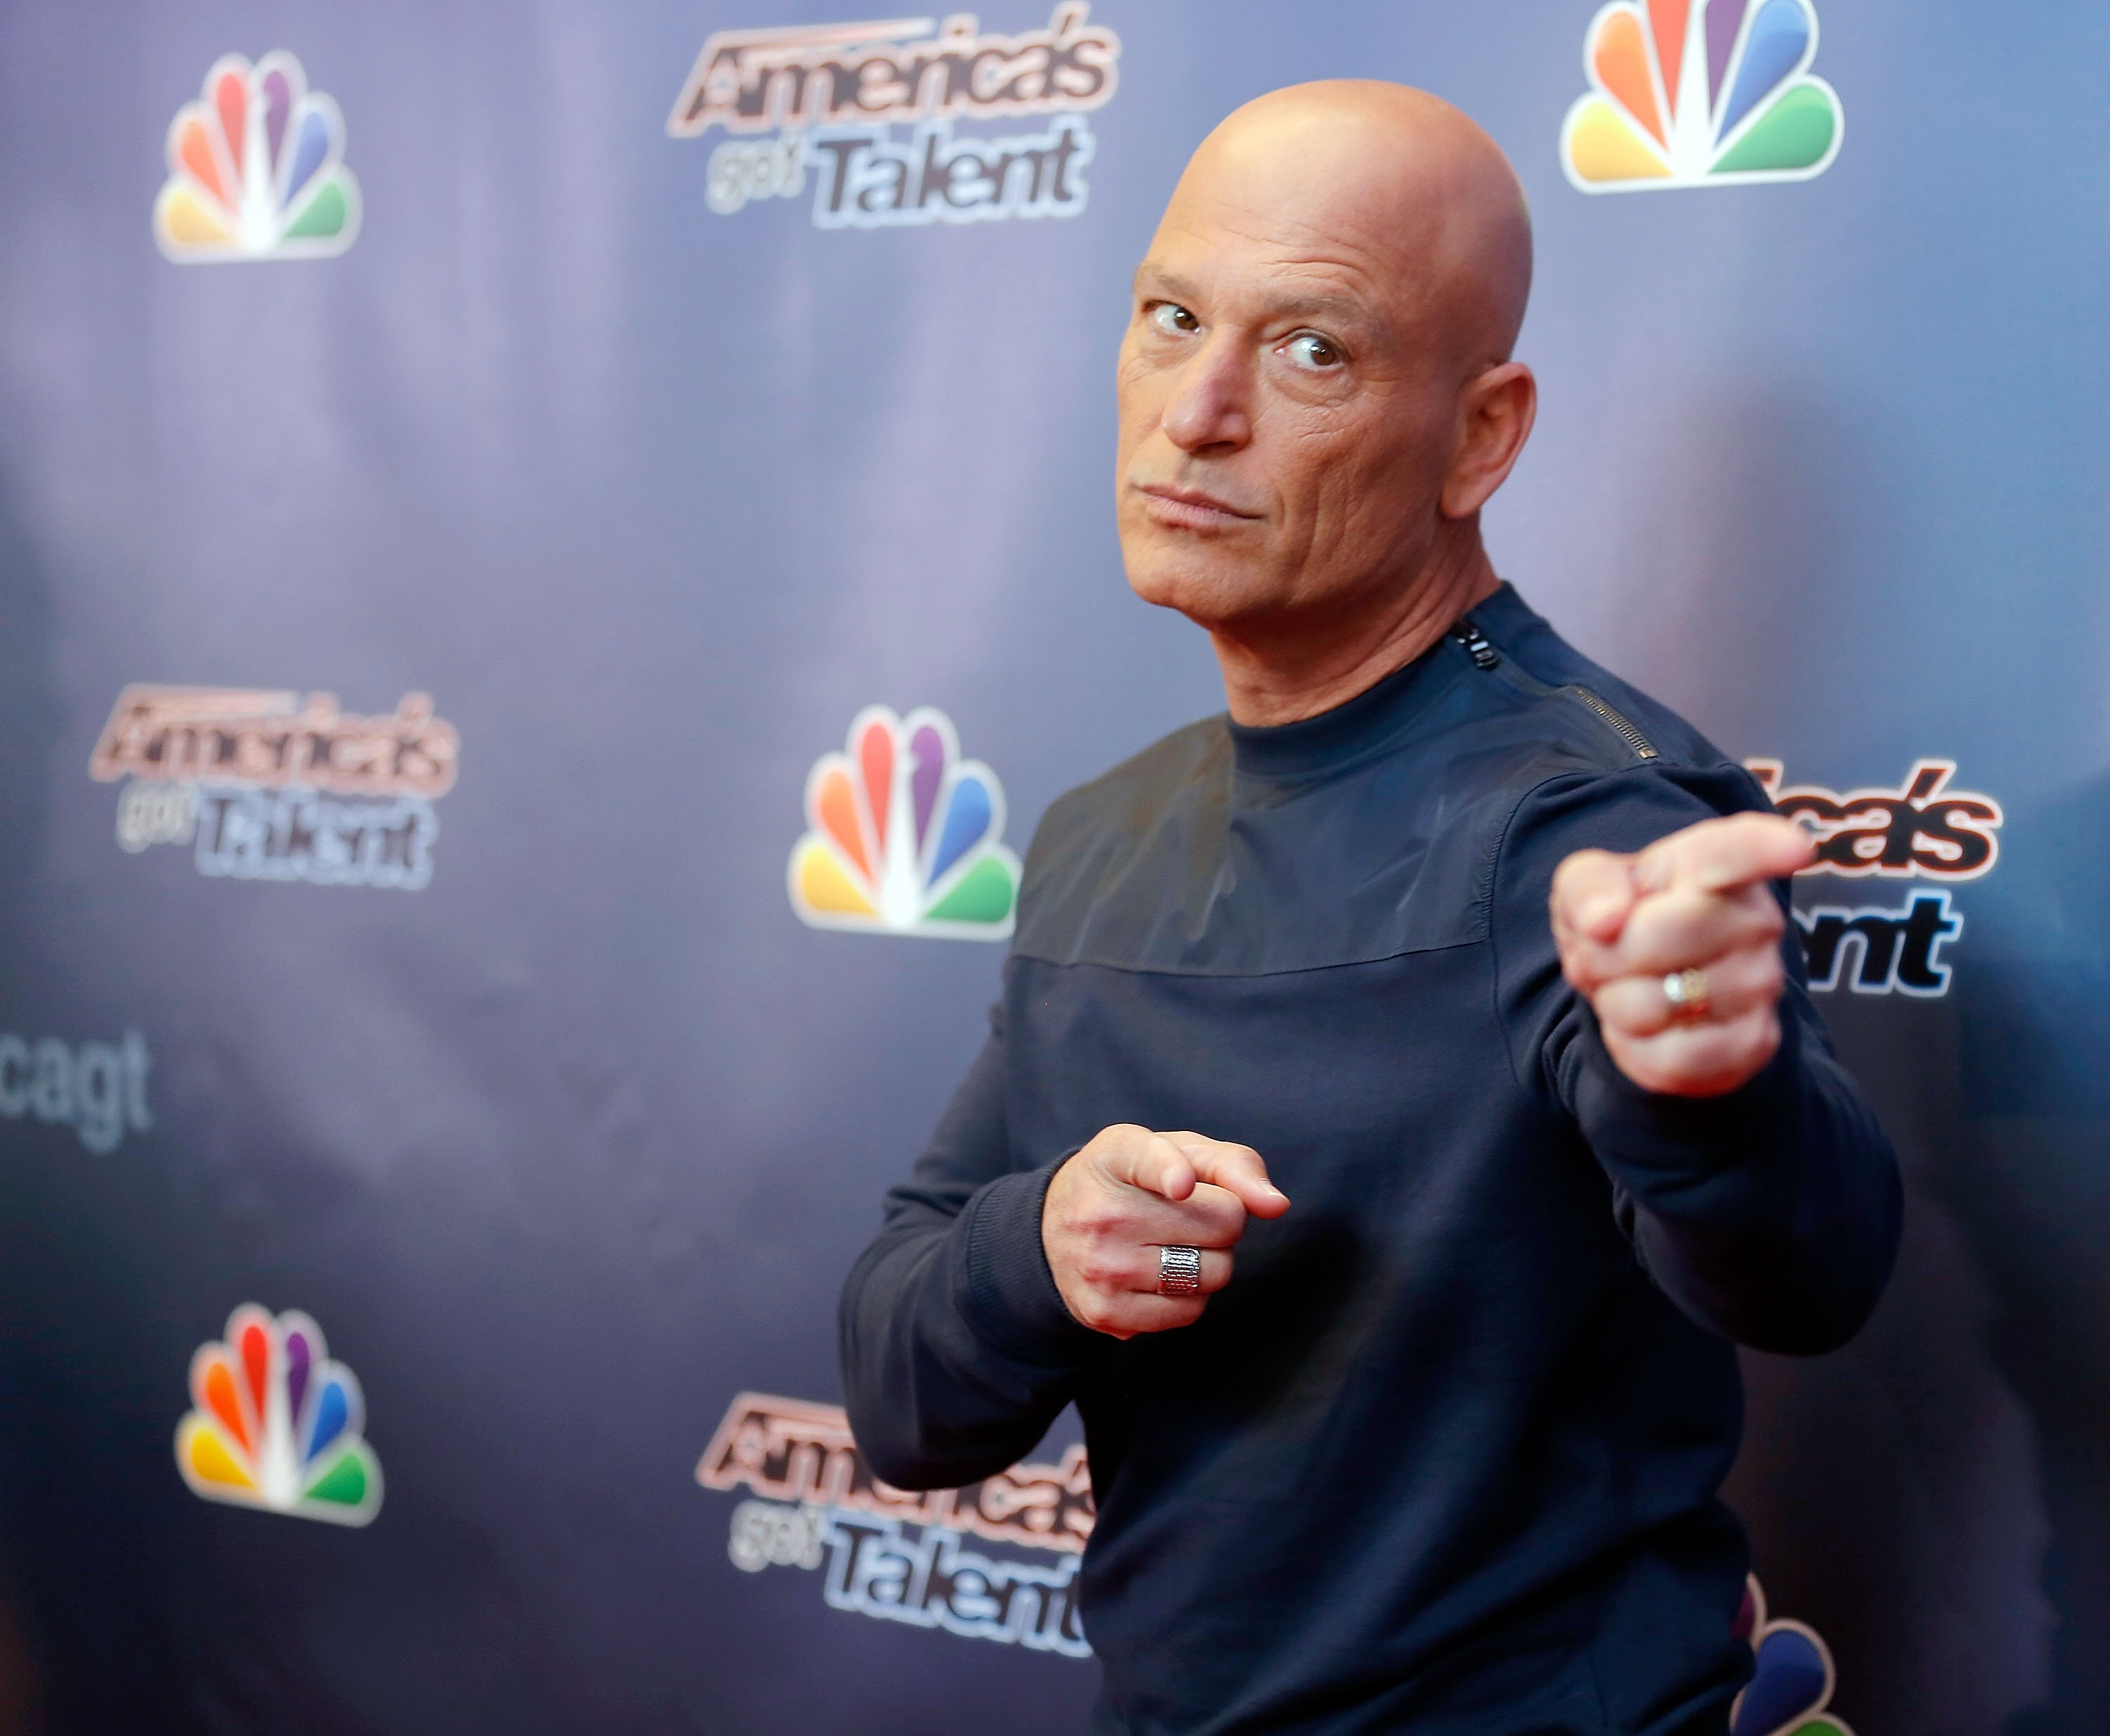 Howie Mandel on April 4, 2014 in New York City | Photo: Getty Images